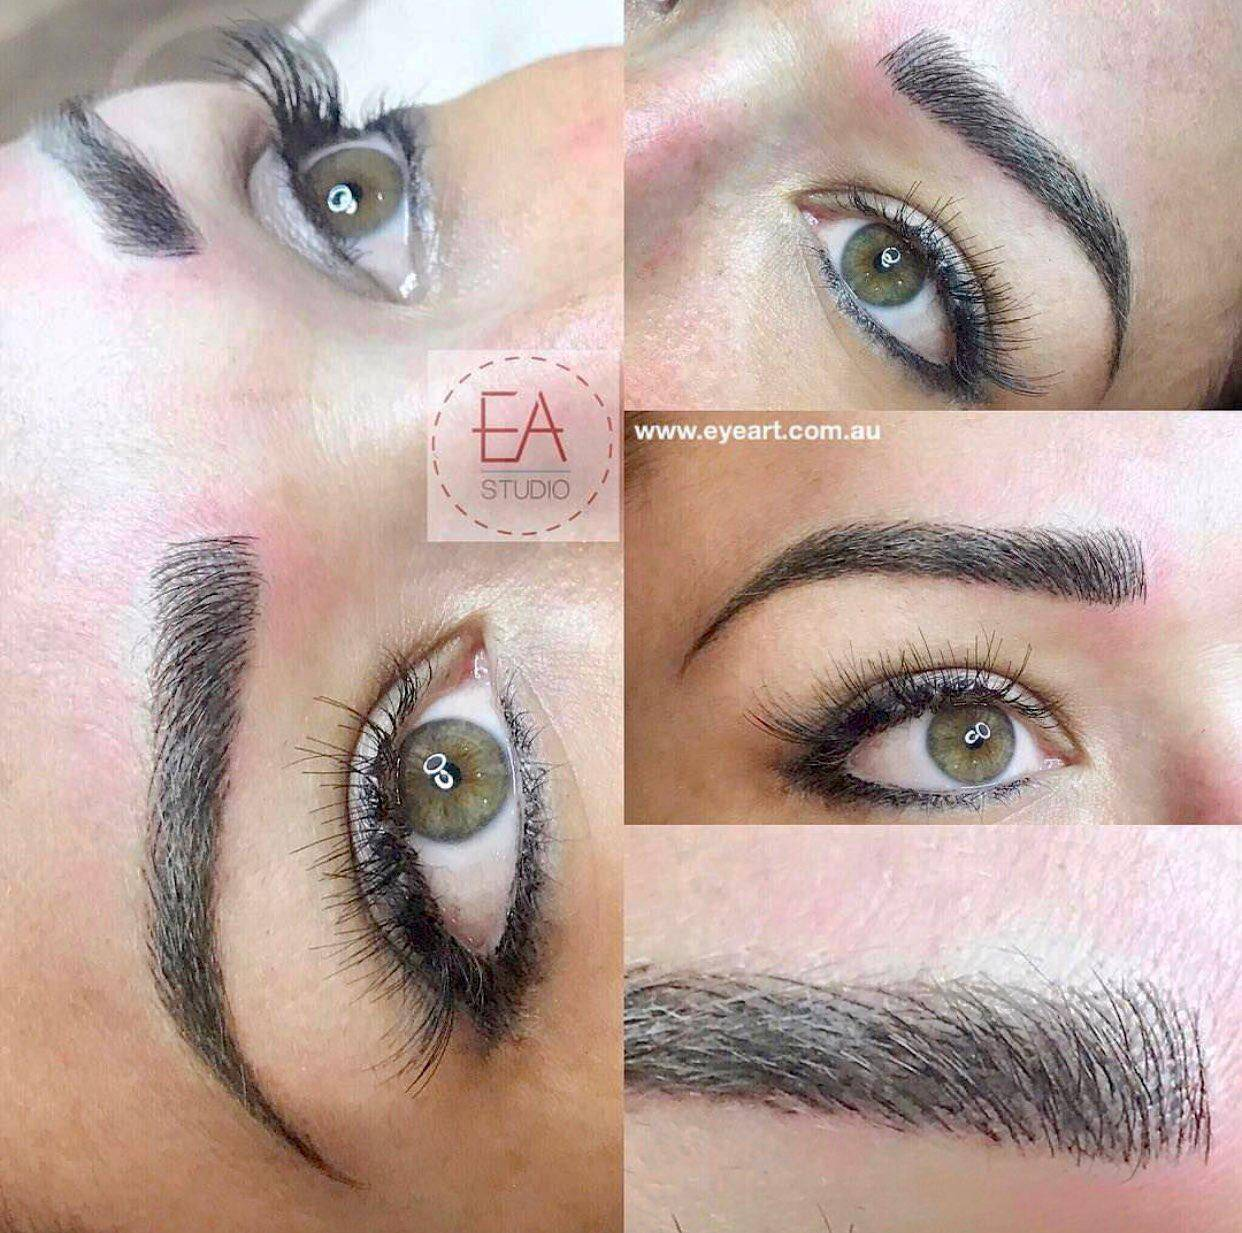 Healed Eyebrow Feathering Tattoo Photos, Prices and Reviews